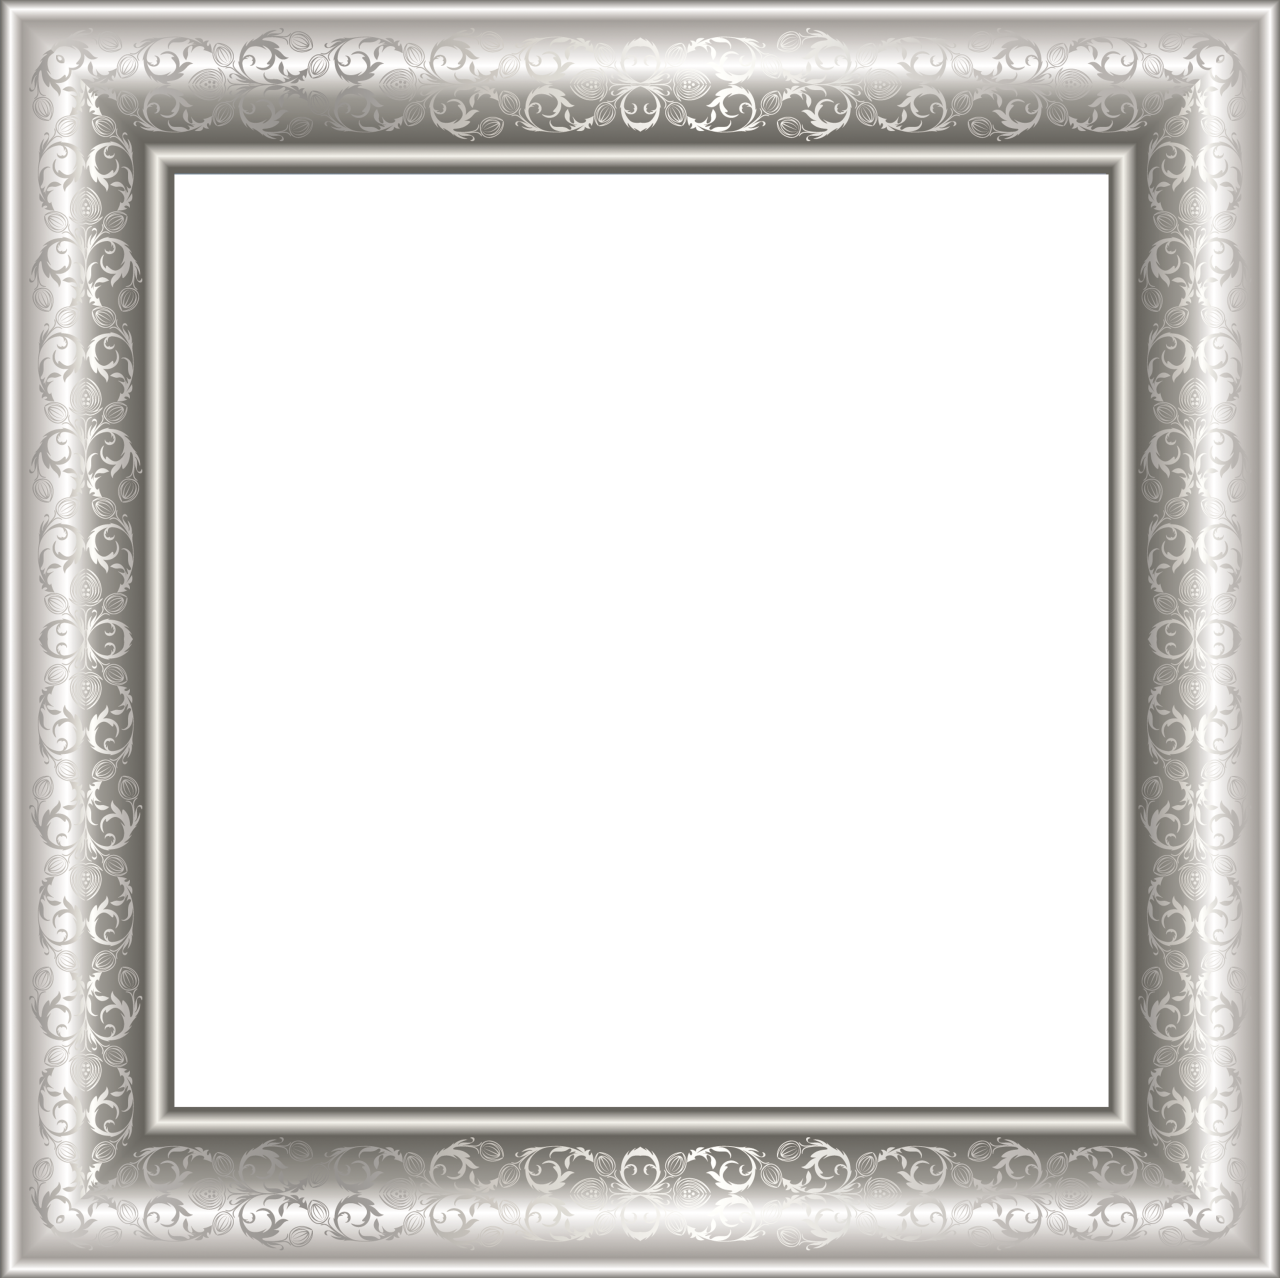 silver transparen png photo frame with ornaments